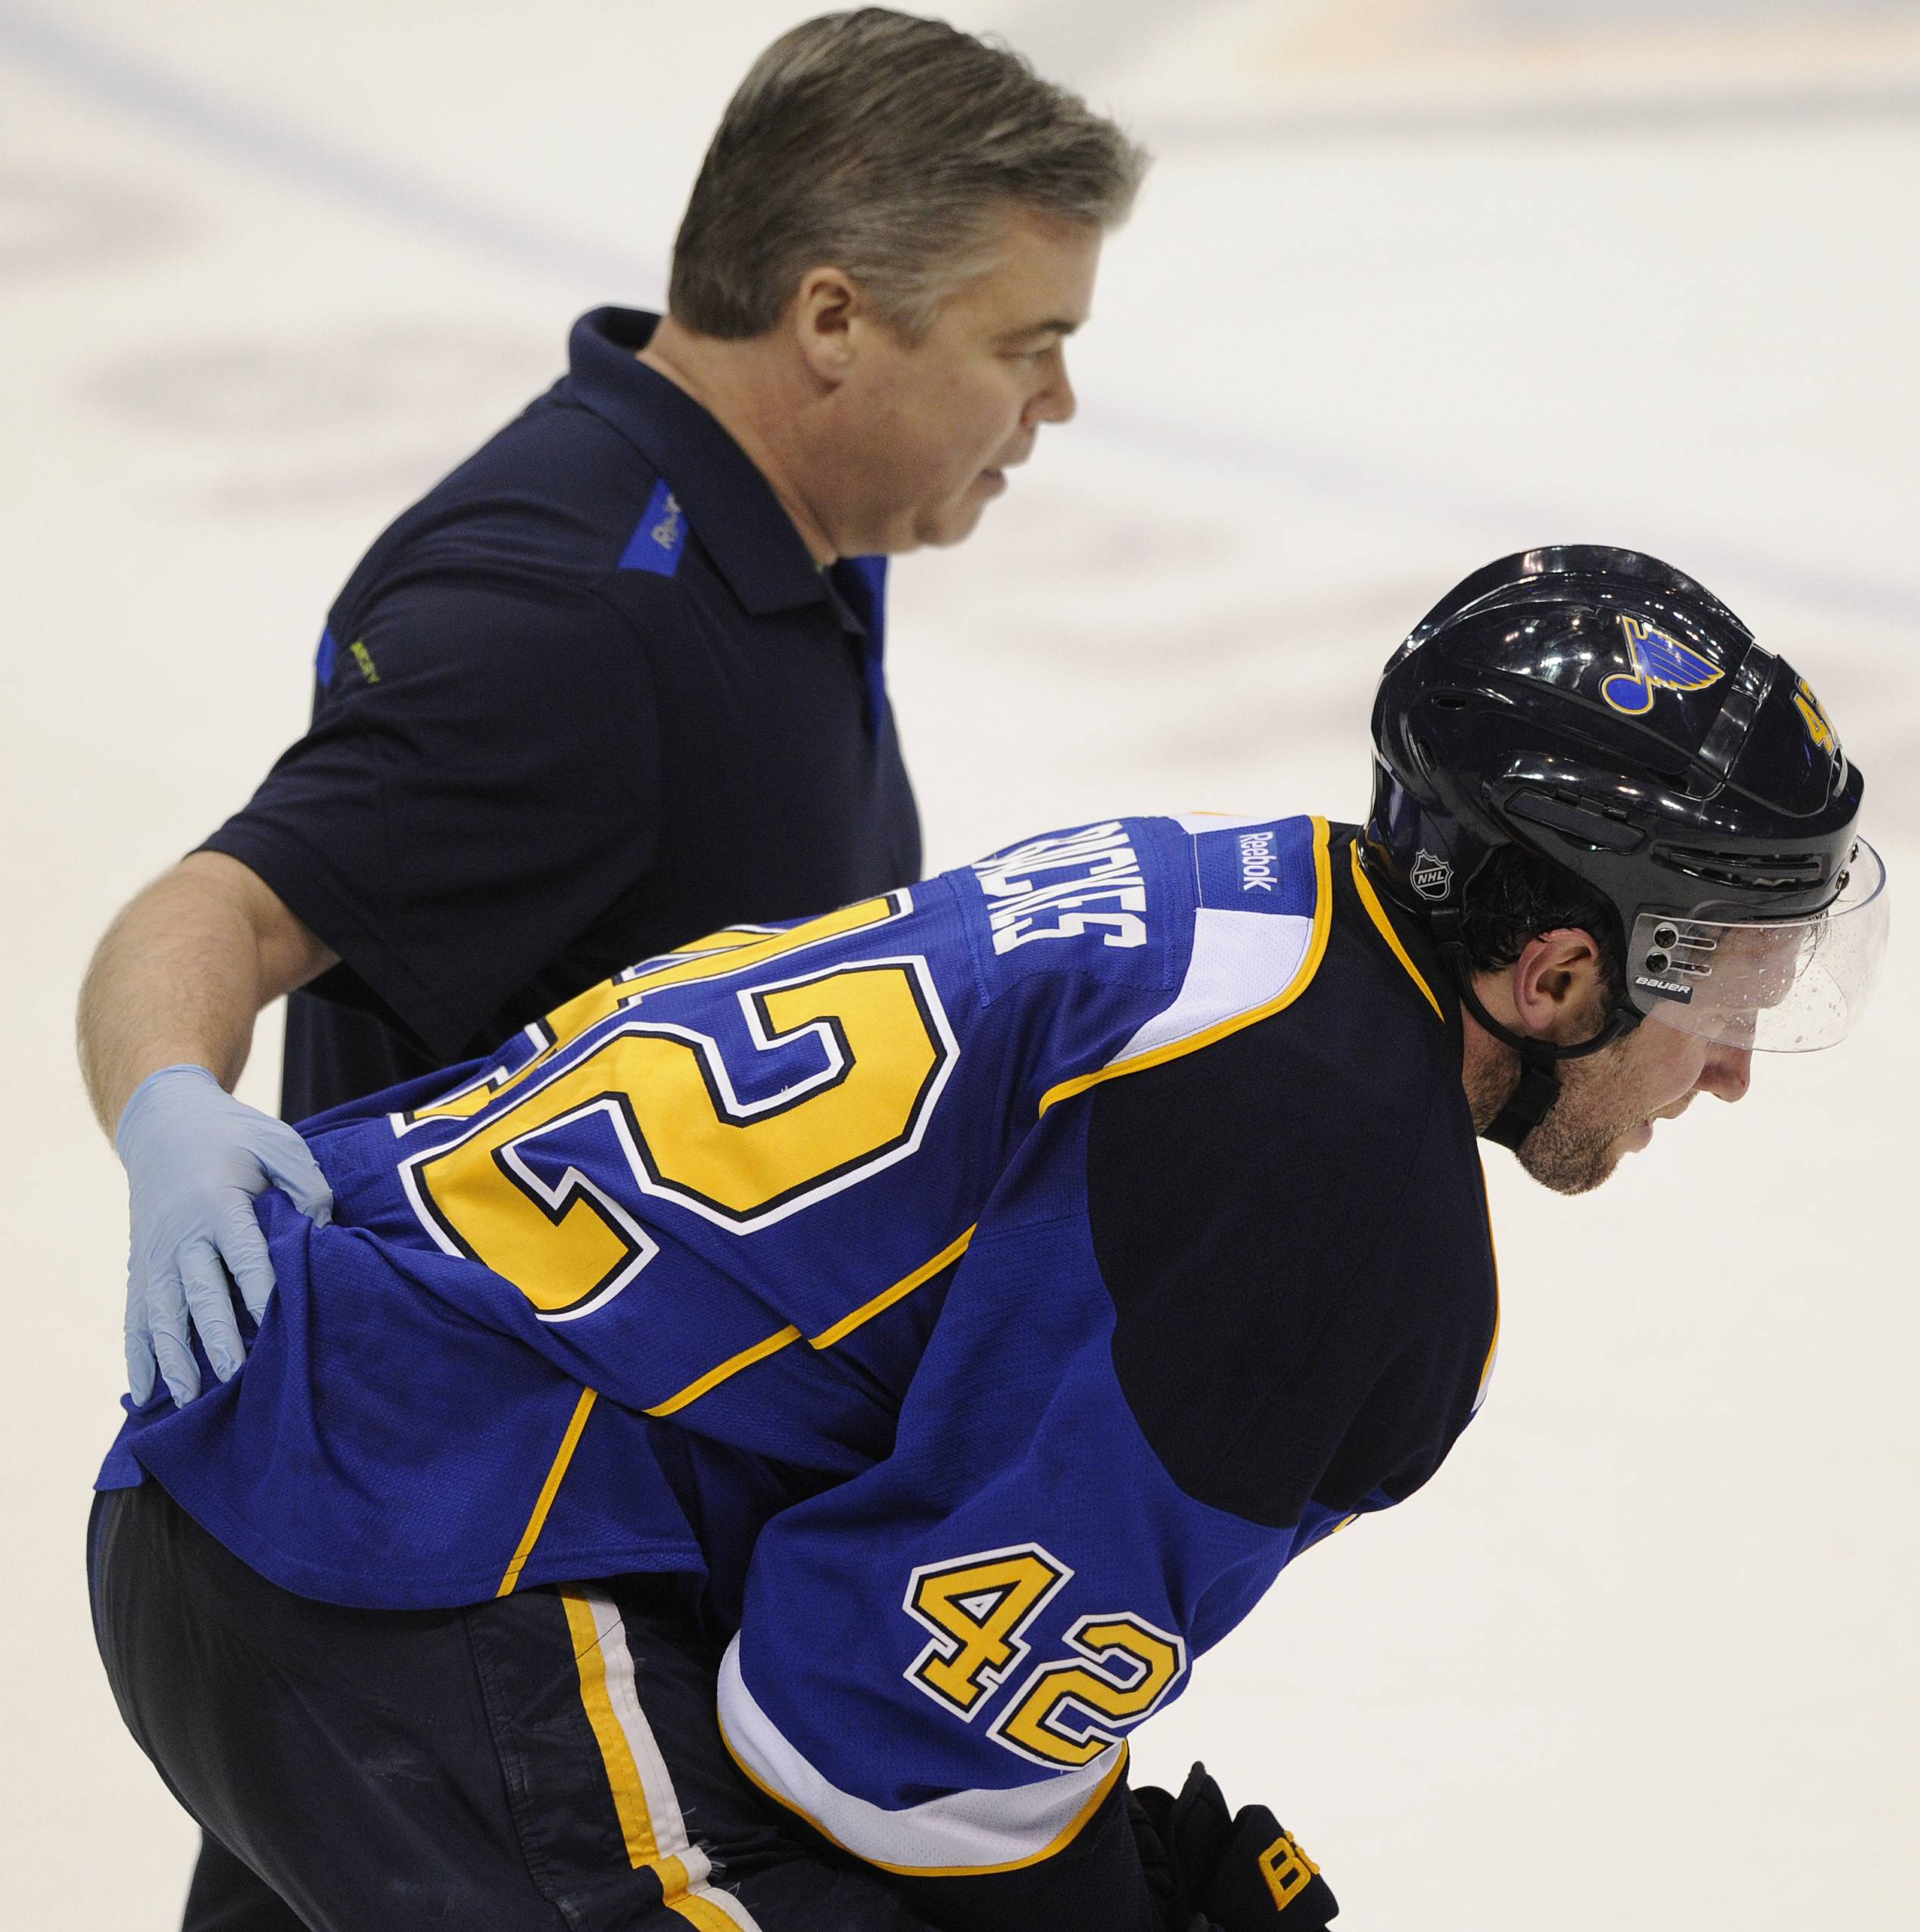 Blues infuriated by Hawks' comments to Backes